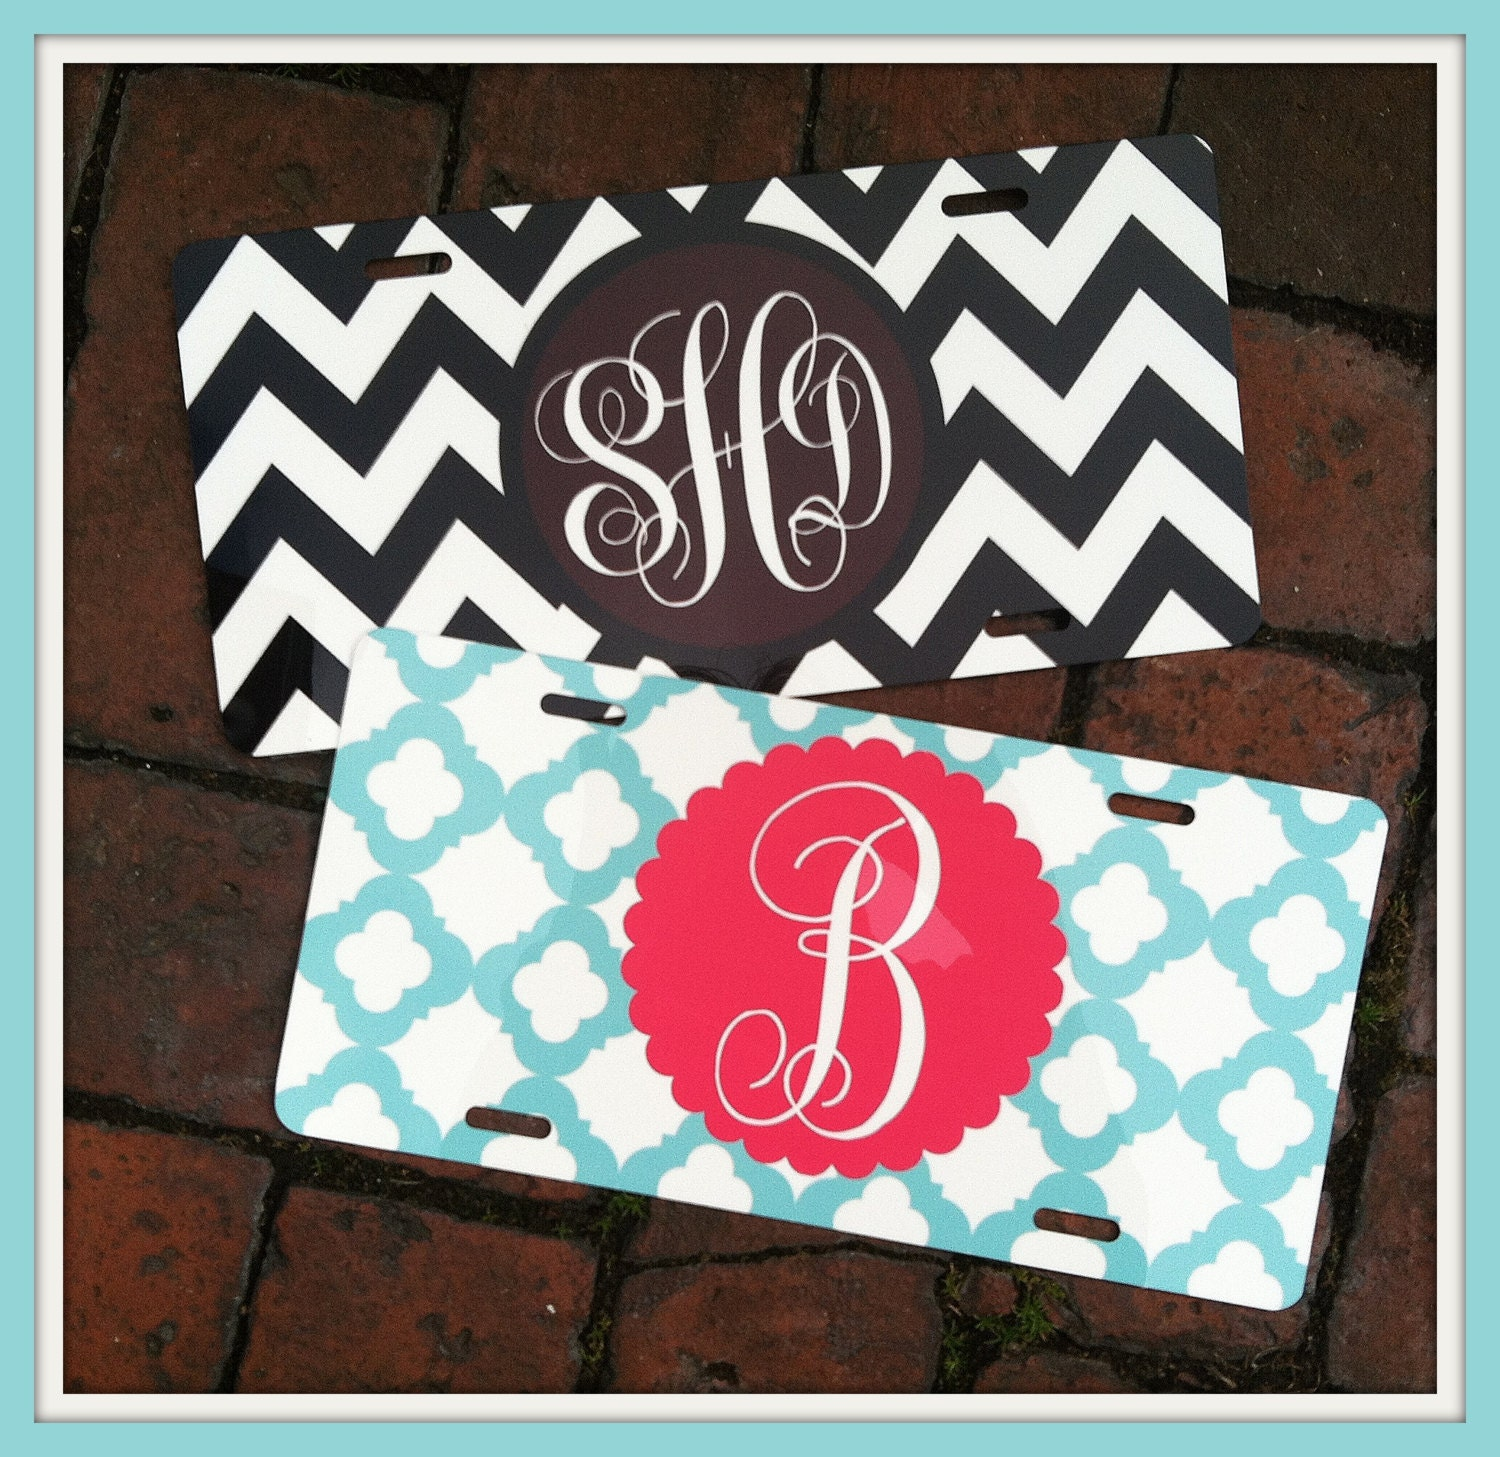 Customized License Plates >> Personalized Monogrammed License Plate Car Tag by ChicMonogram